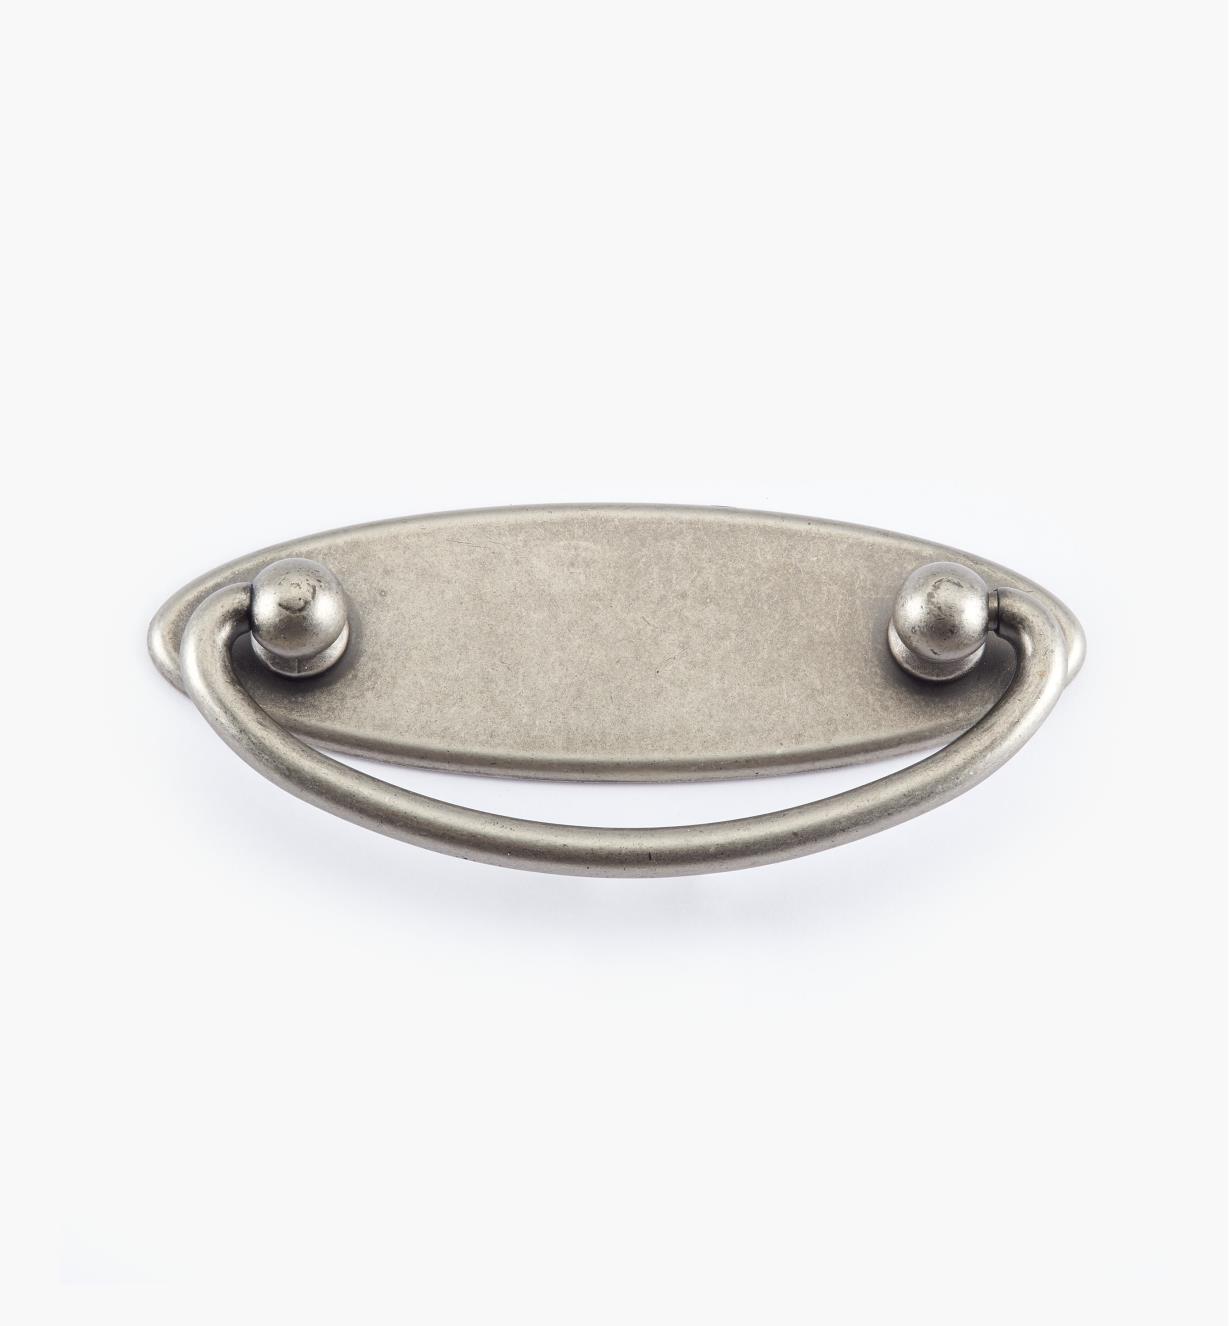 01X3011 - 64mm Pewter Plate Handle